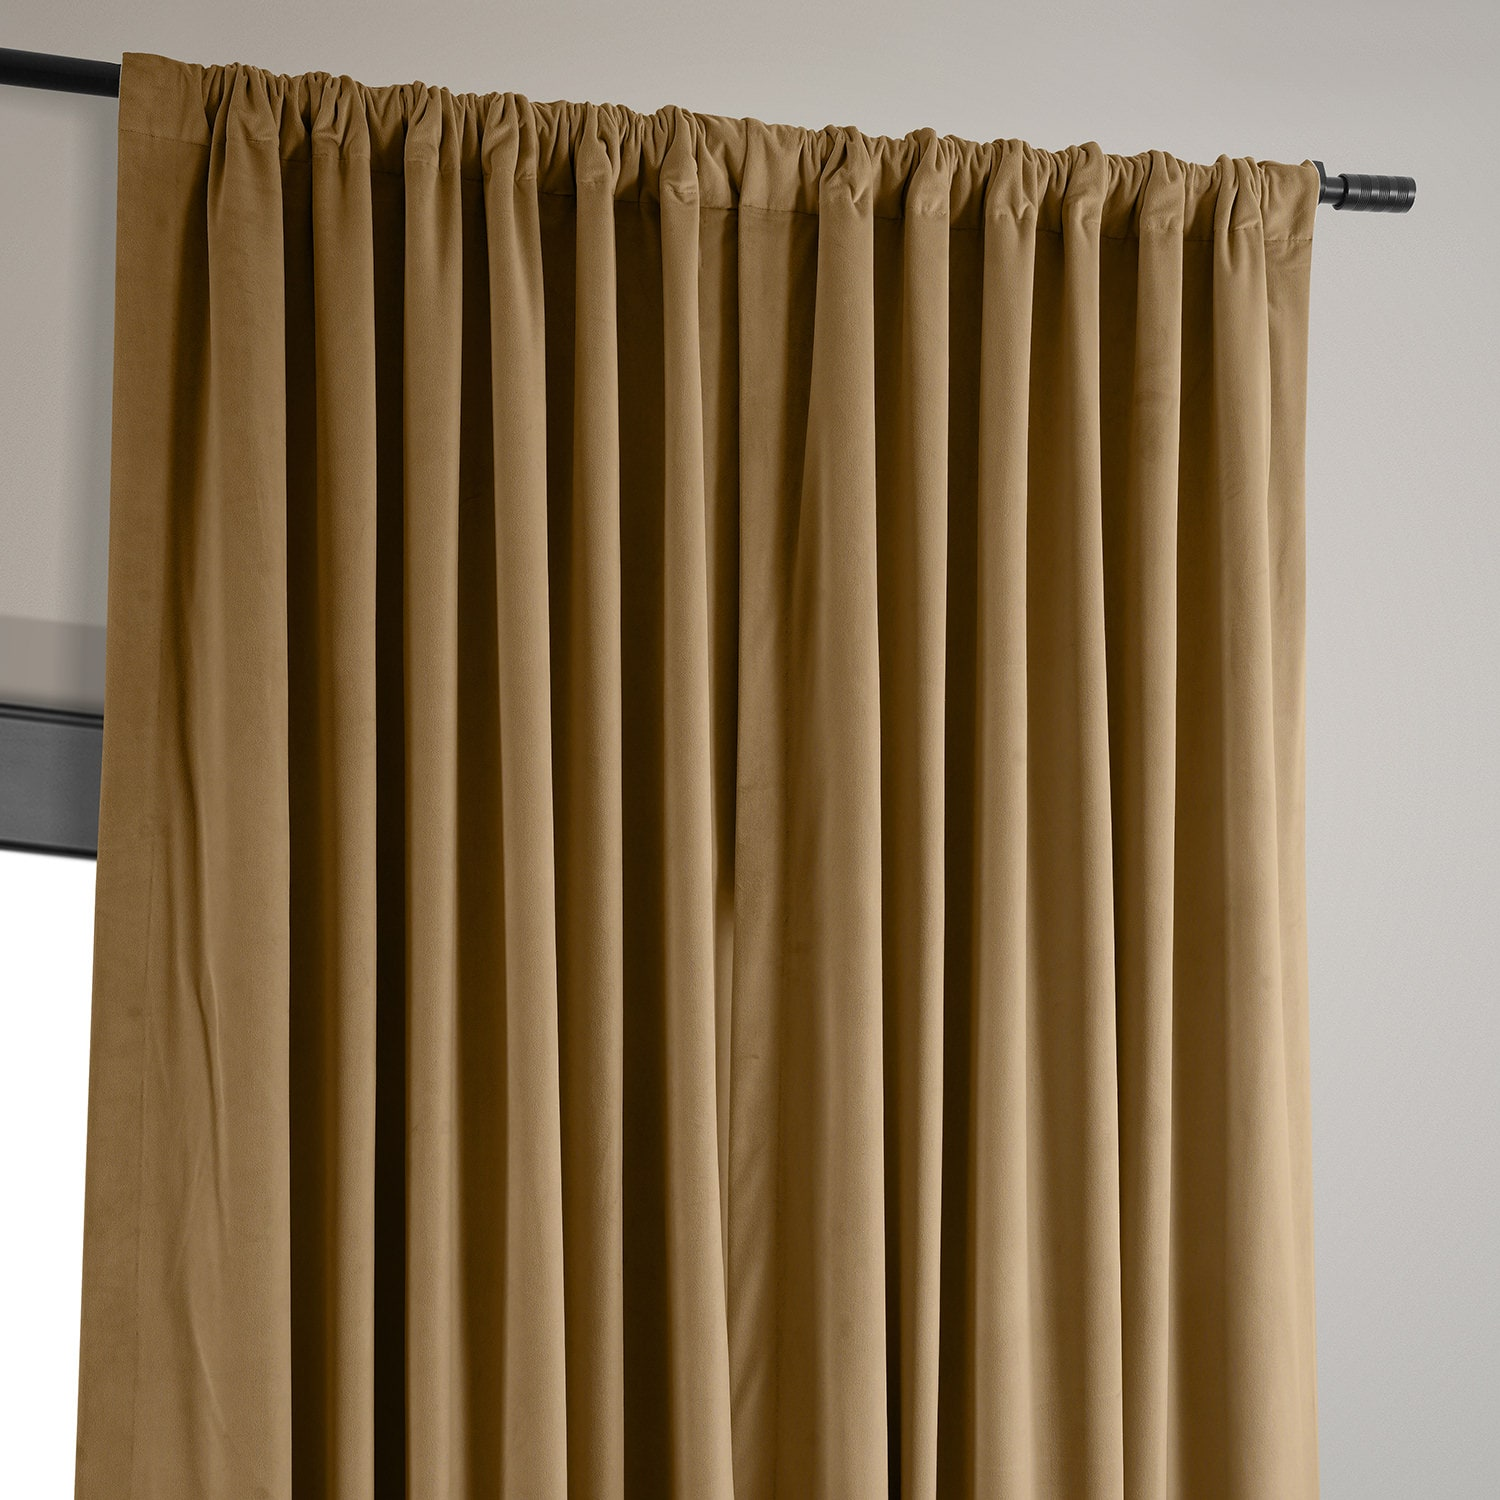 Signature Amber Gold Extra Wide Velvet Blackout Pole Pocket Curtain